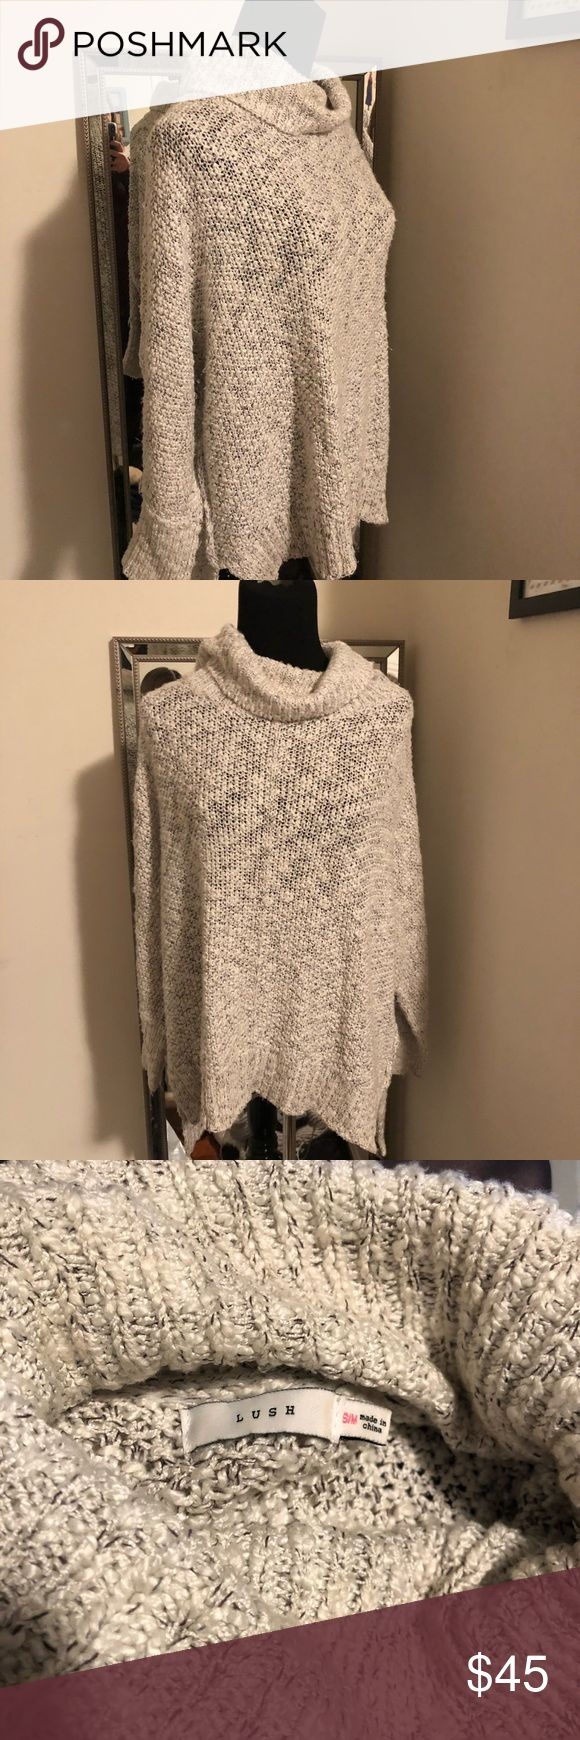 Turtleneck Sweater From a boutique called apricot lane in CT. Amazing quality, worn a handful of times but in super great condition. S/M Lush Sweaters Cowl & Turtlenecks